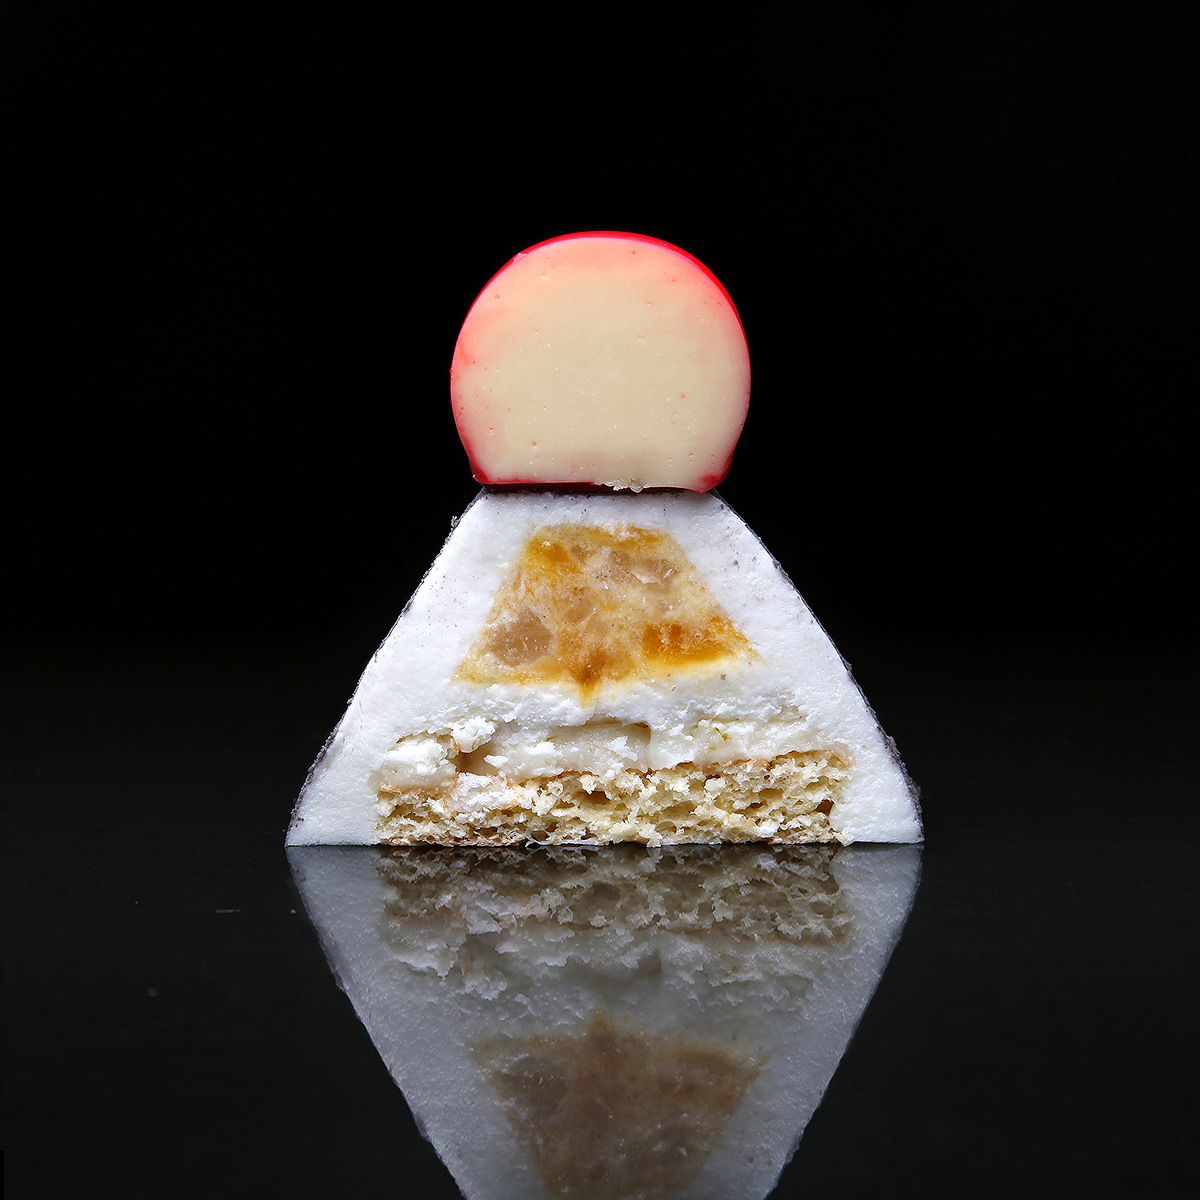 The pyramid with coconut